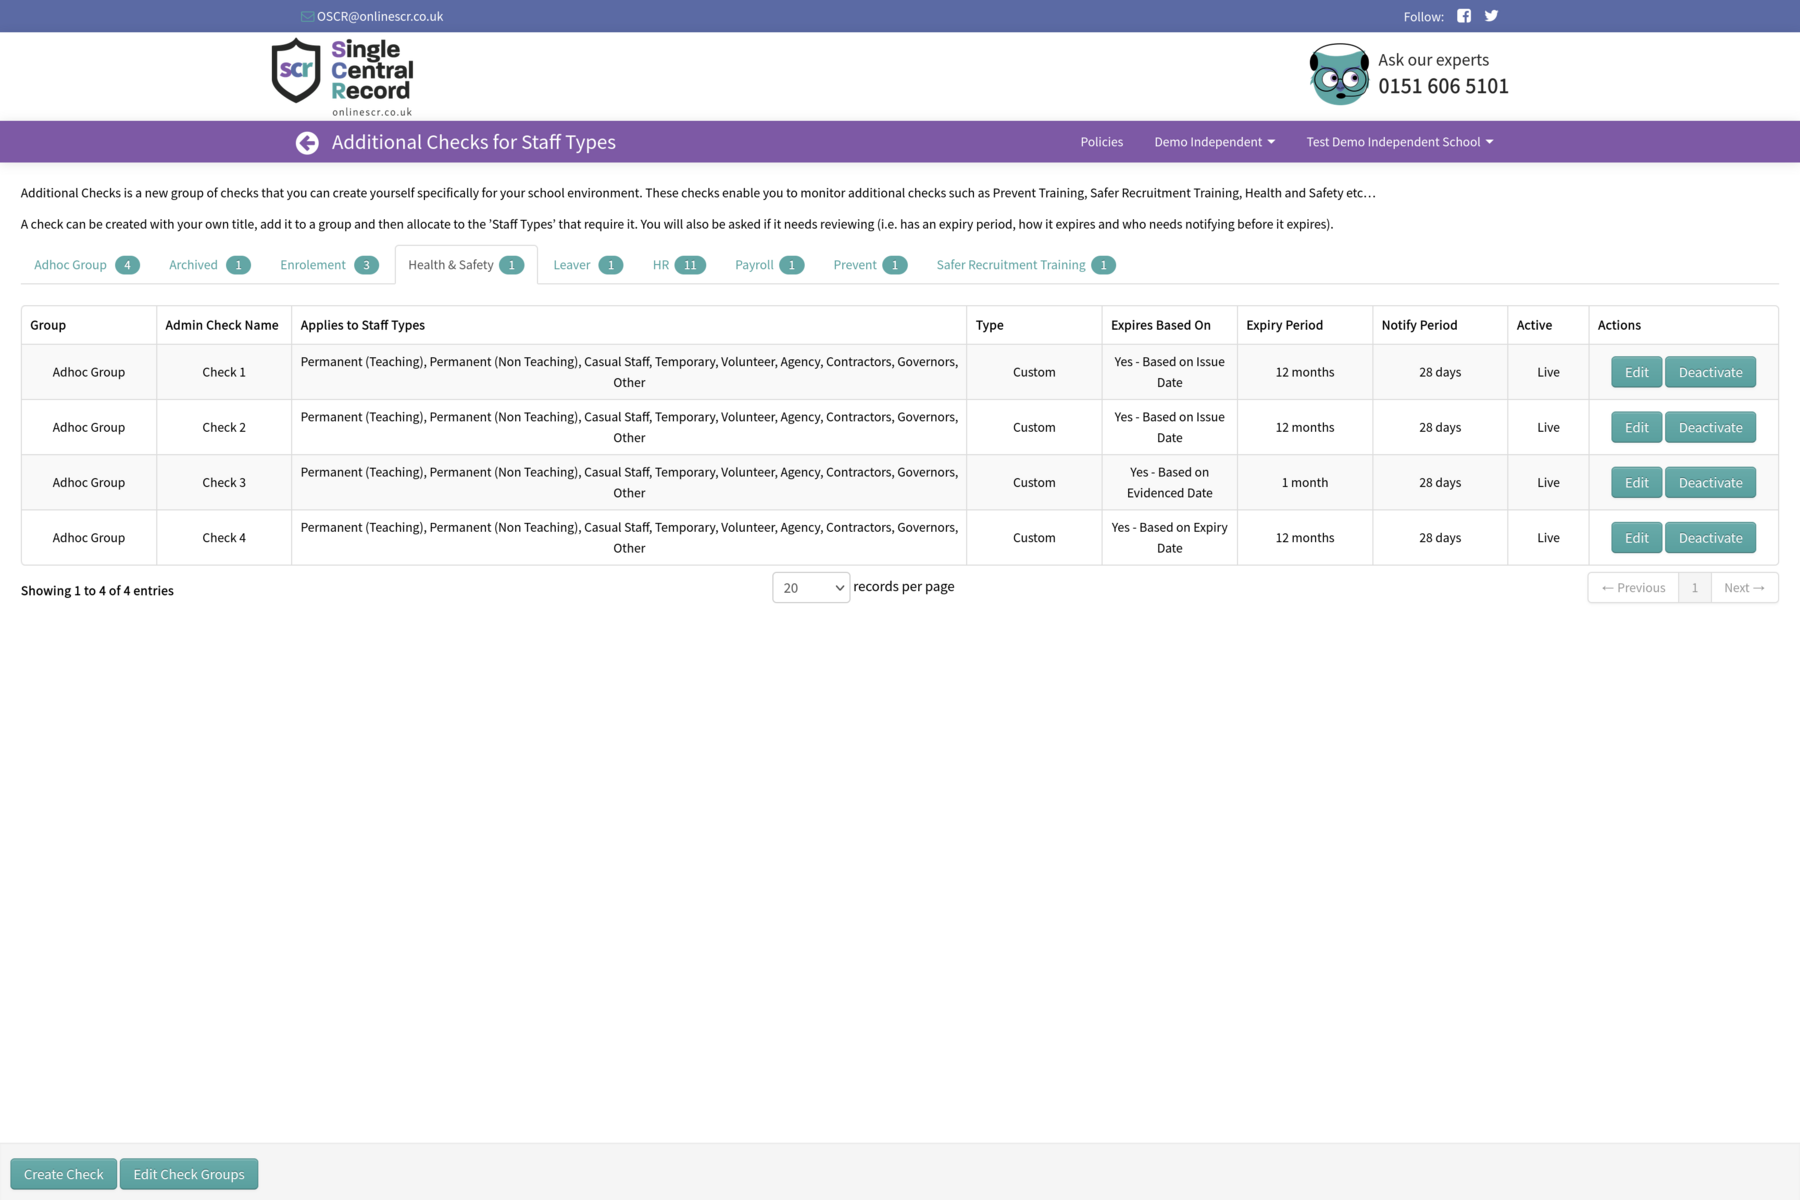 Screenshot of the Additional Checks screen of the Single Central Record system